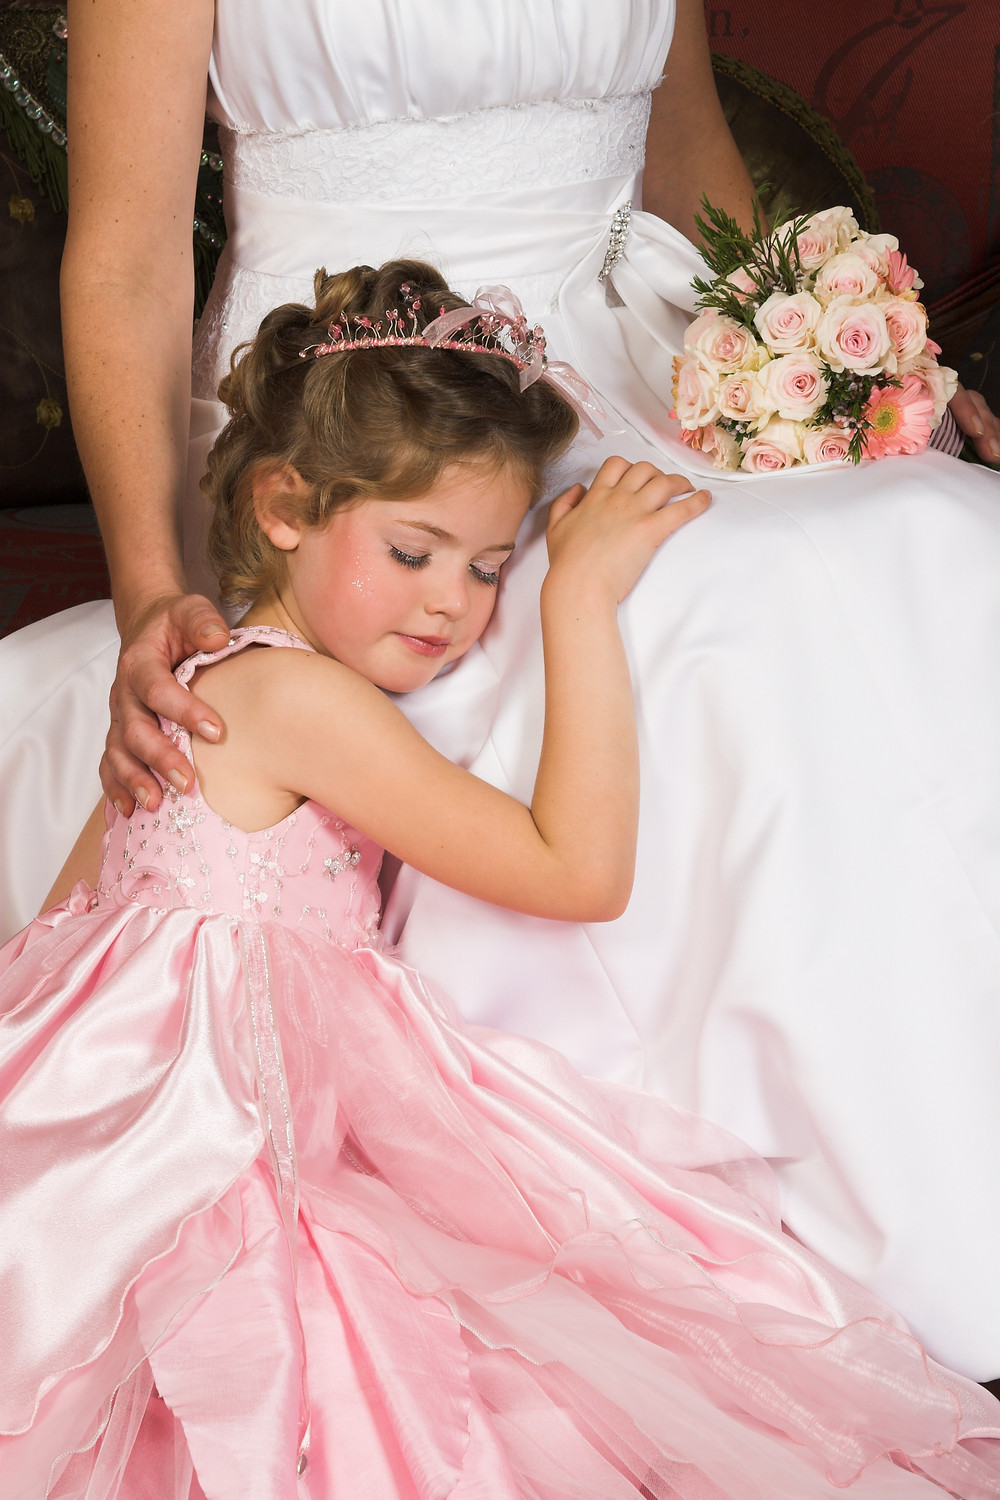 Flower Girl 101: 10 Things Every Bride Should Know